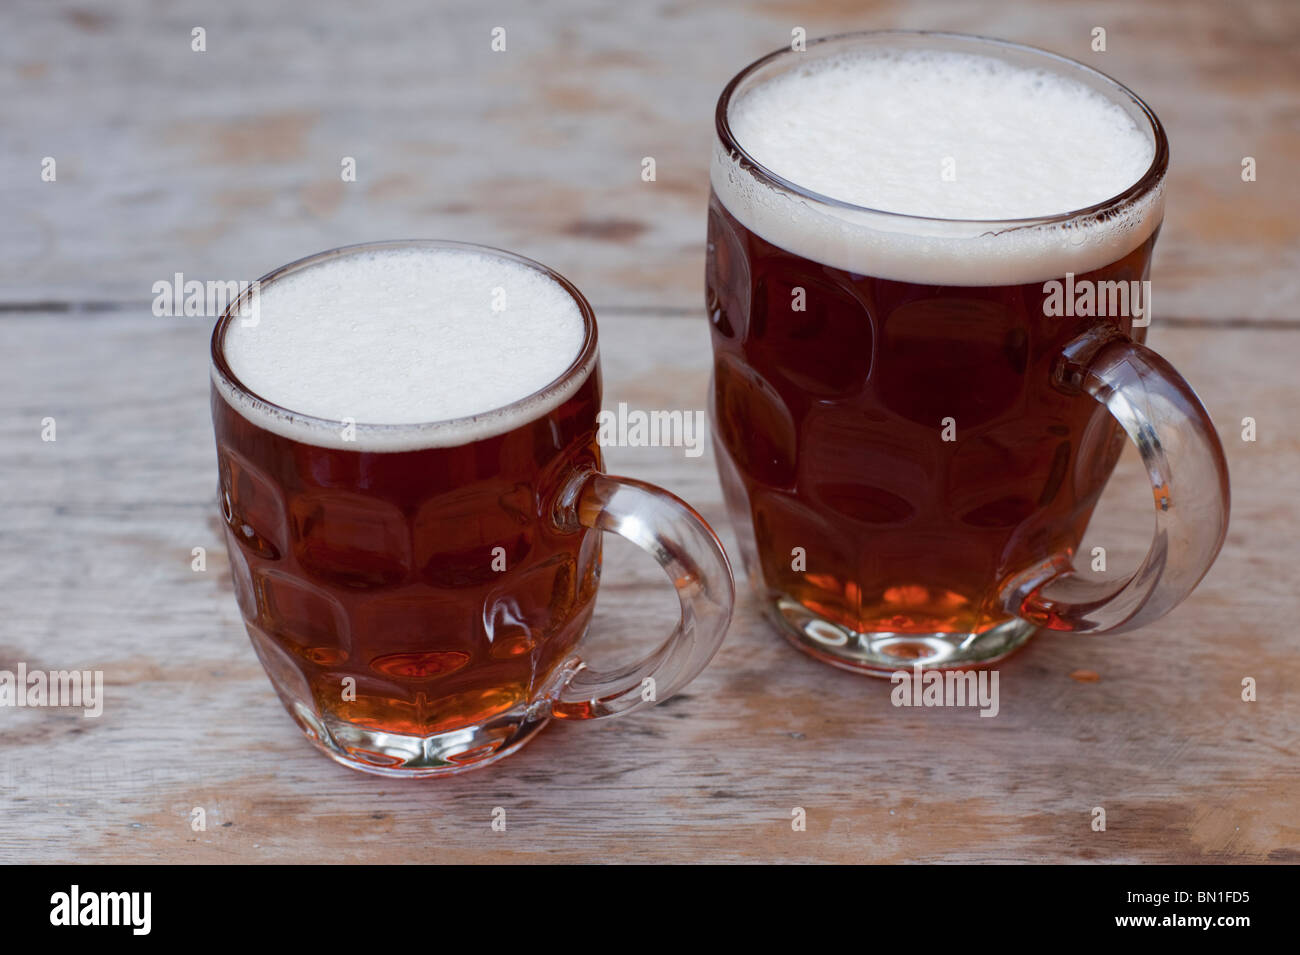 A half-pint and a full pint of 'Old Hooky' beer on a weathered outdoor table at a pub. - Stock Image